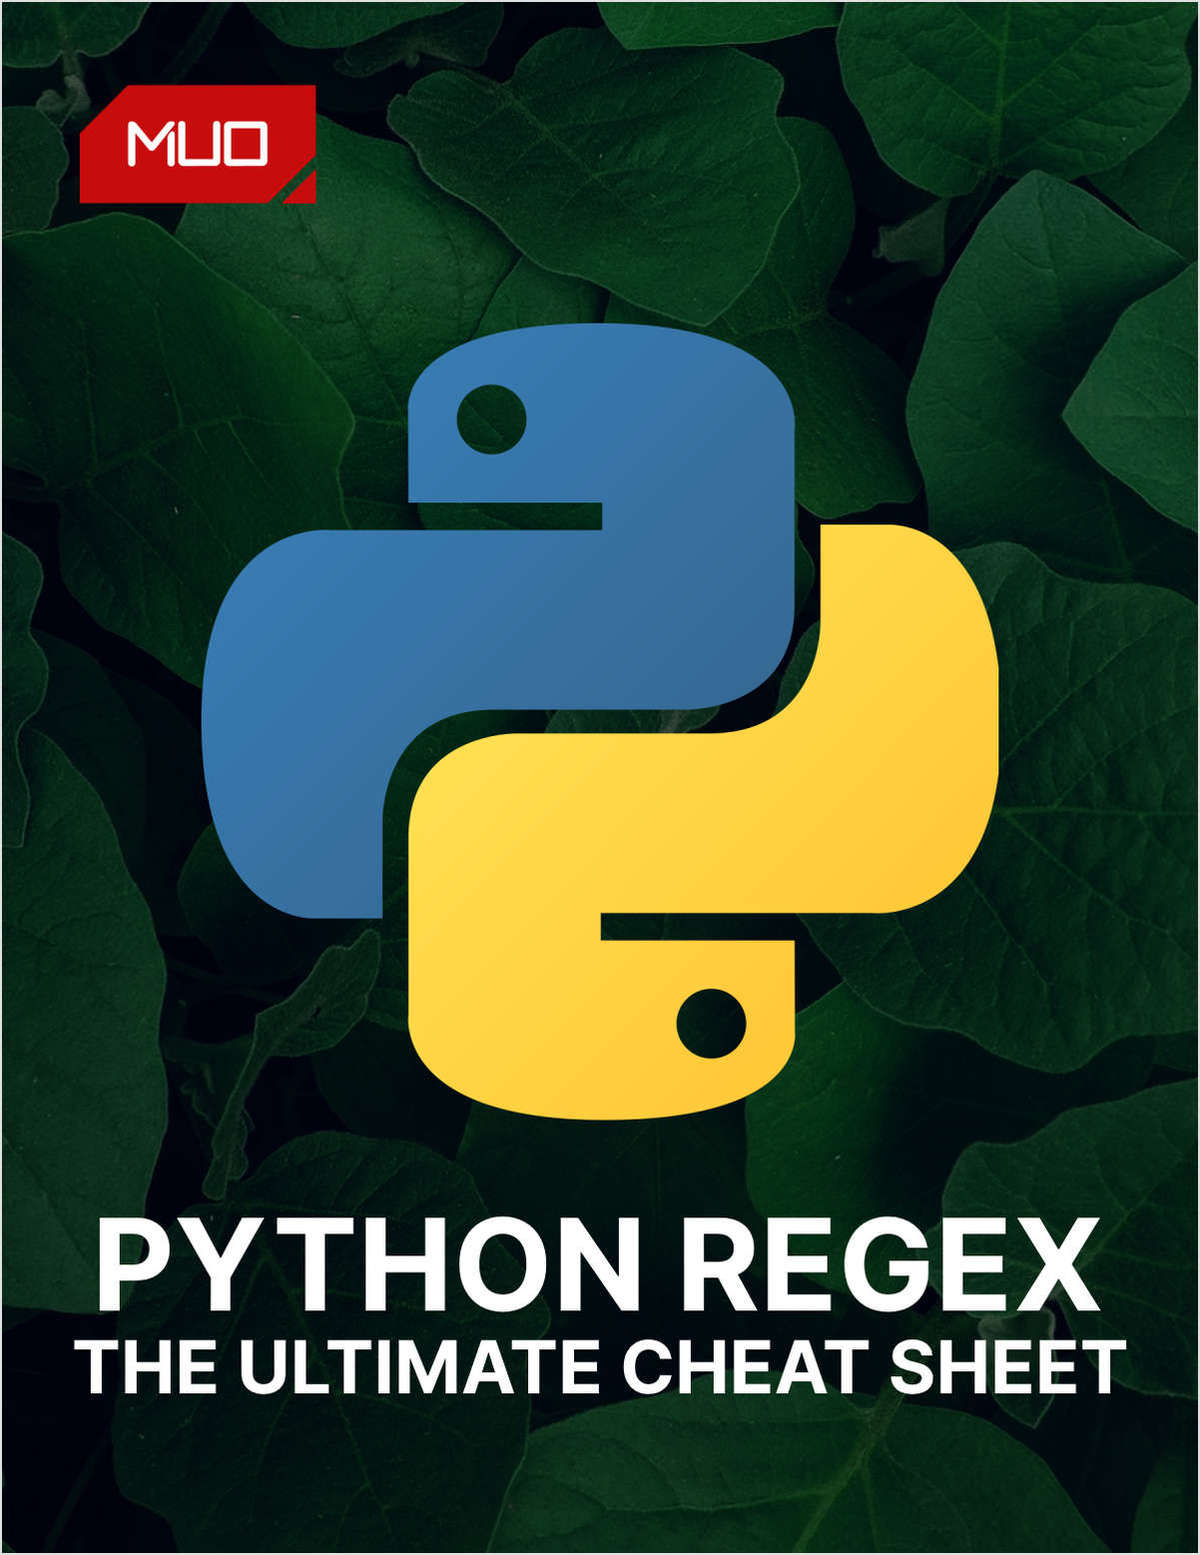 The Python RegEx Cheat Sheet for Budding Programmers